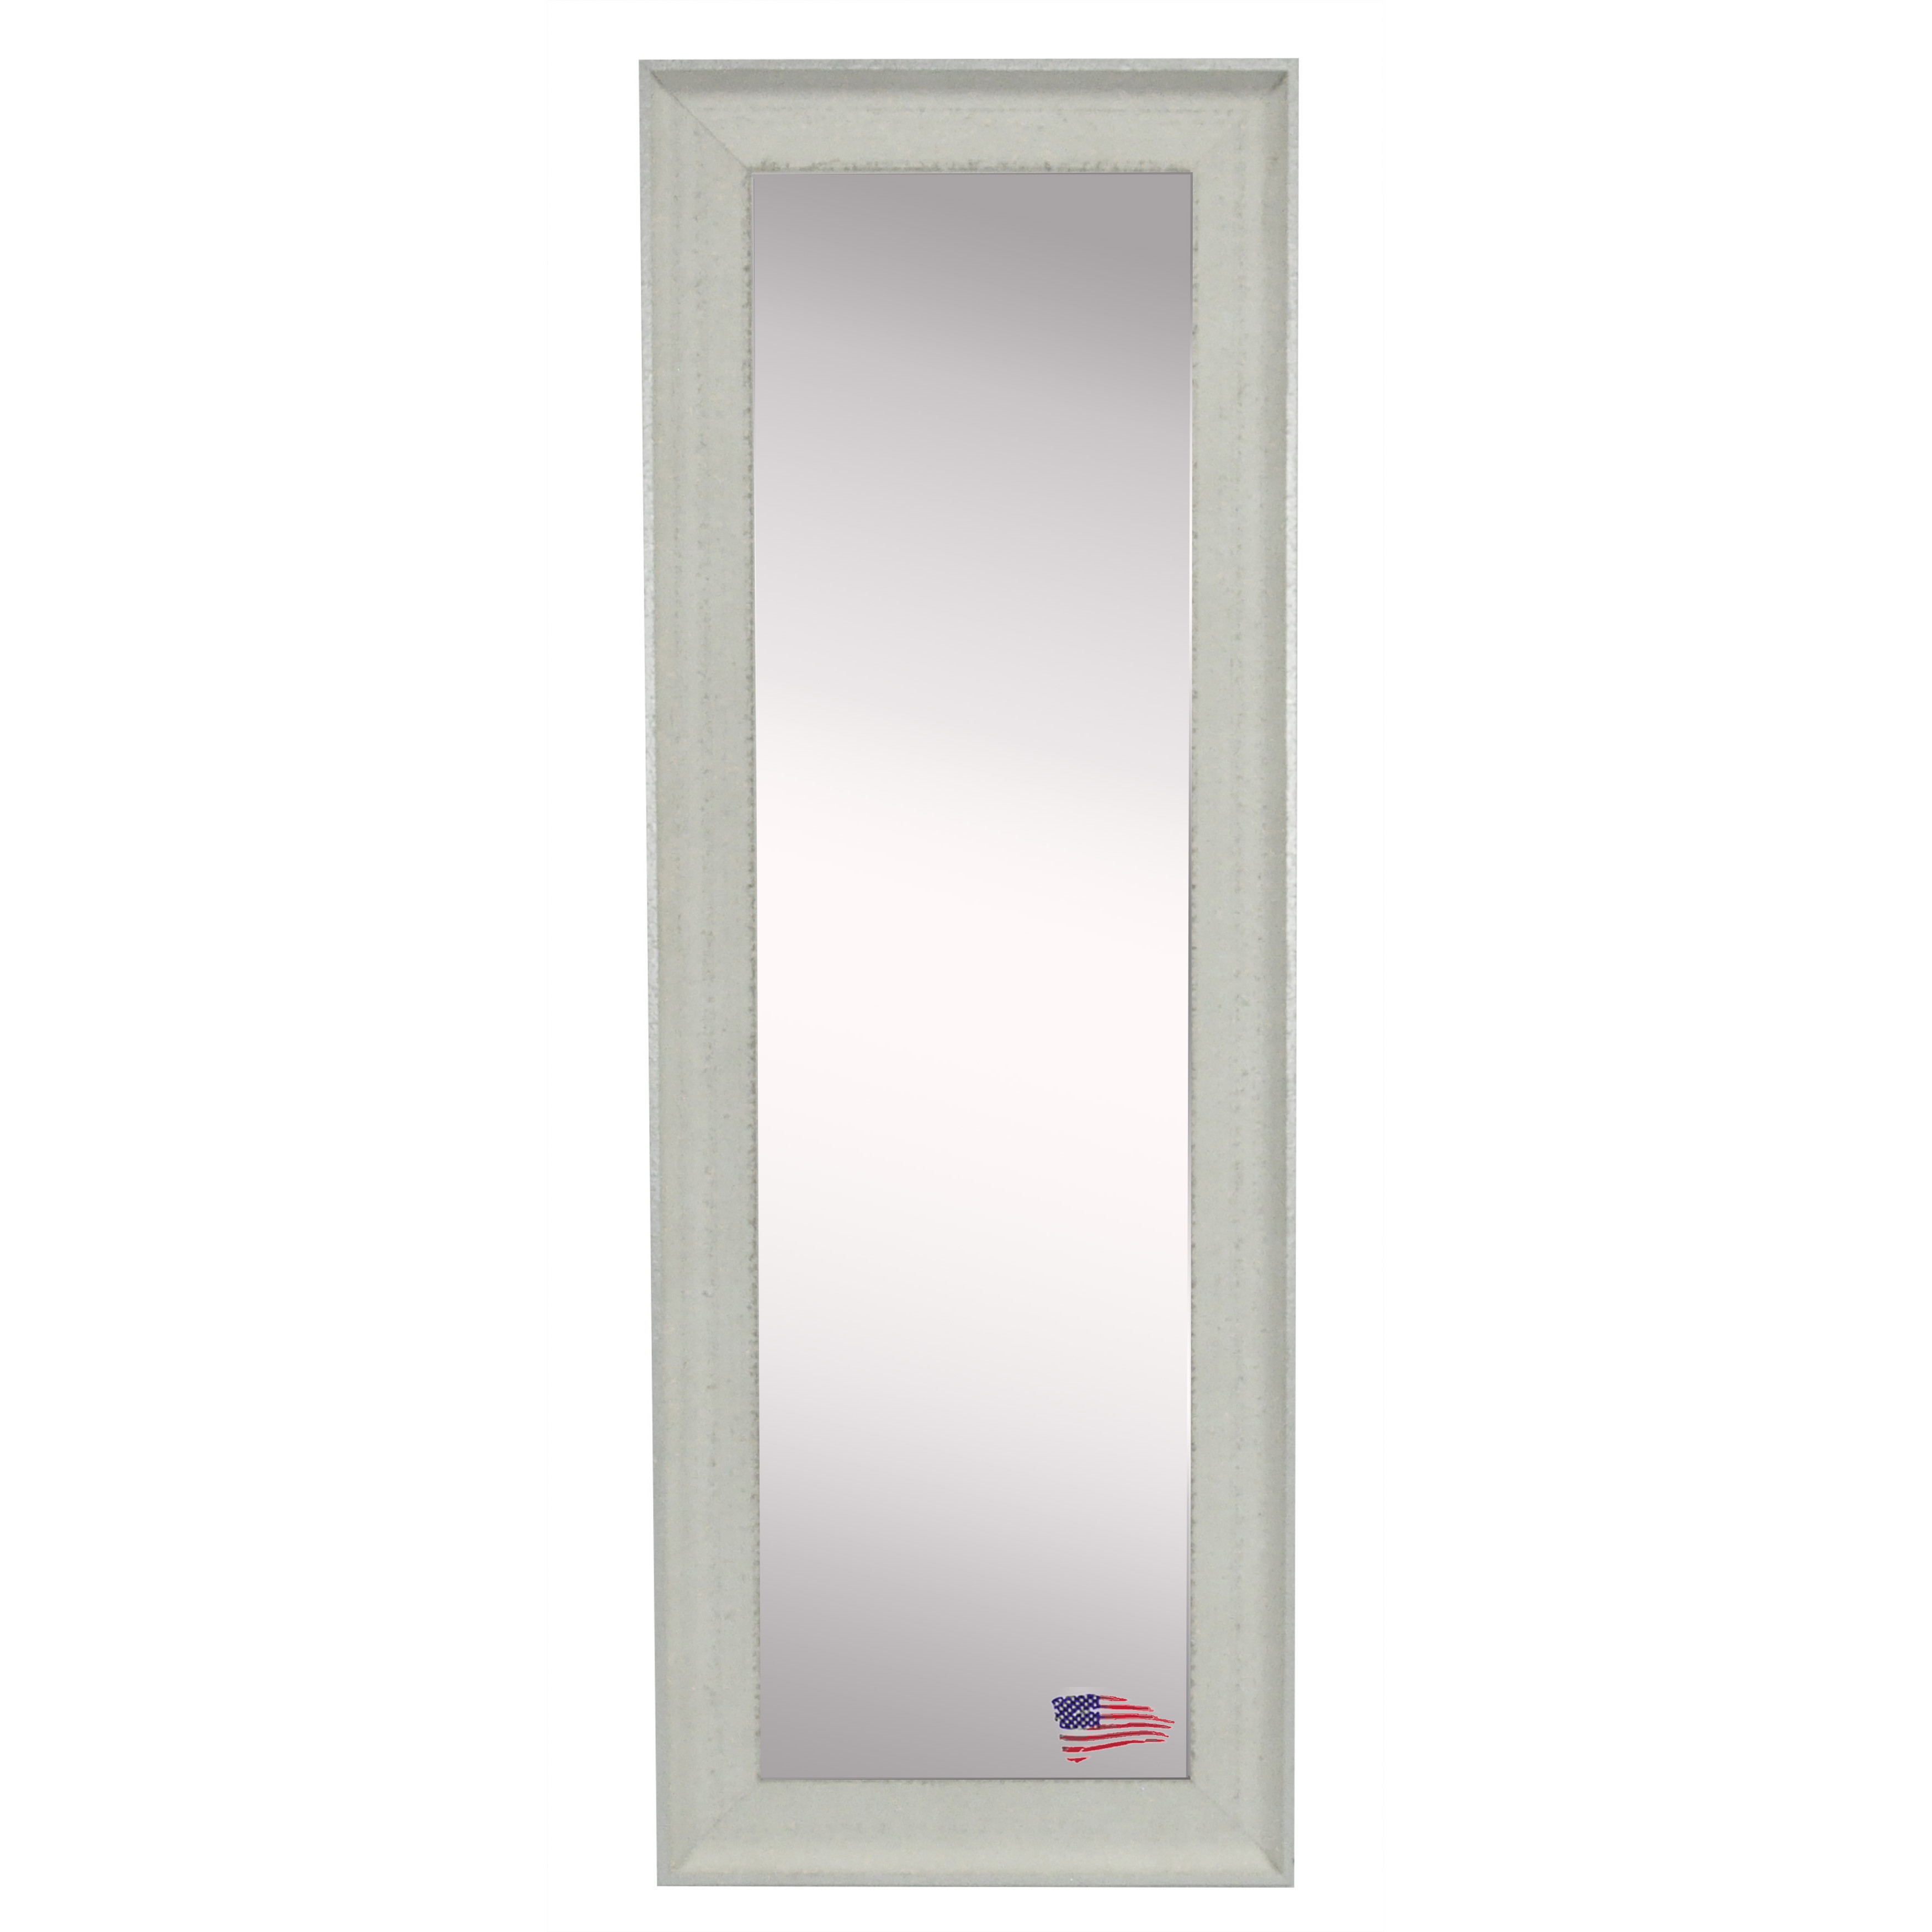 Rayne Mirrors Ava Vintage White Floorwall Mirror Wayfair Inside Vintage White Mirror (Image 5 of 15)